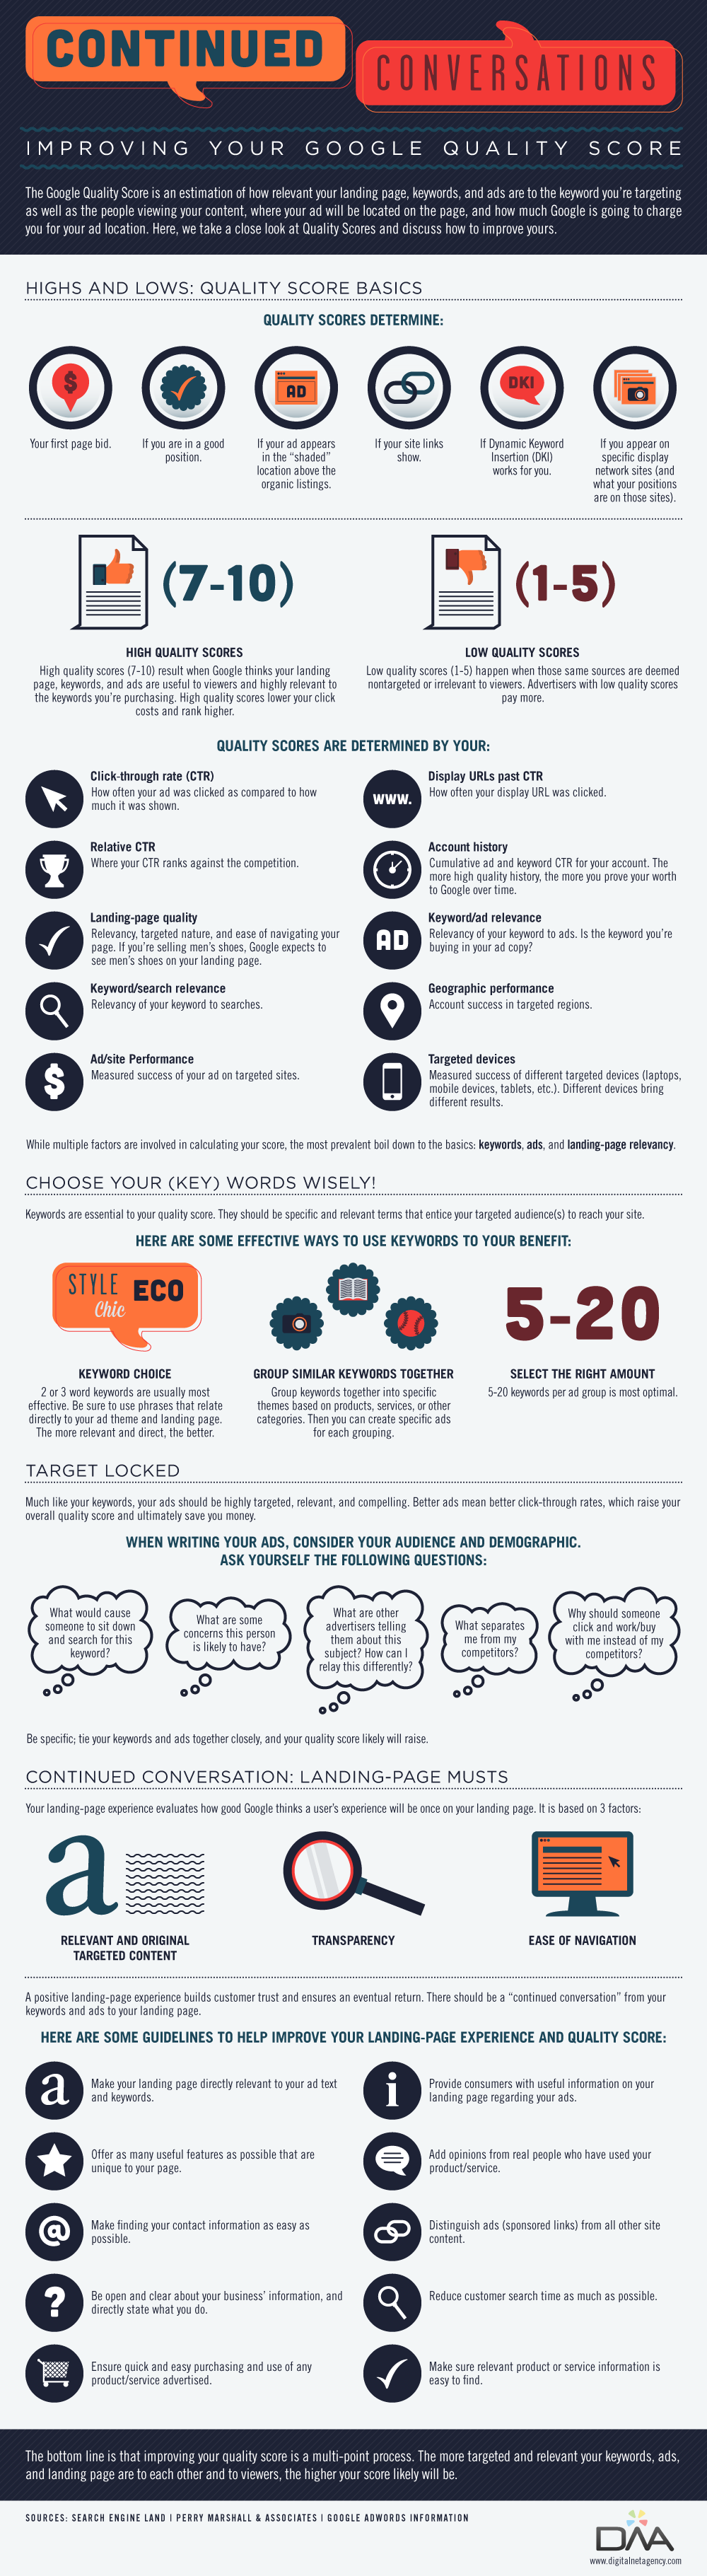 Improve Google Quality Score Infographic